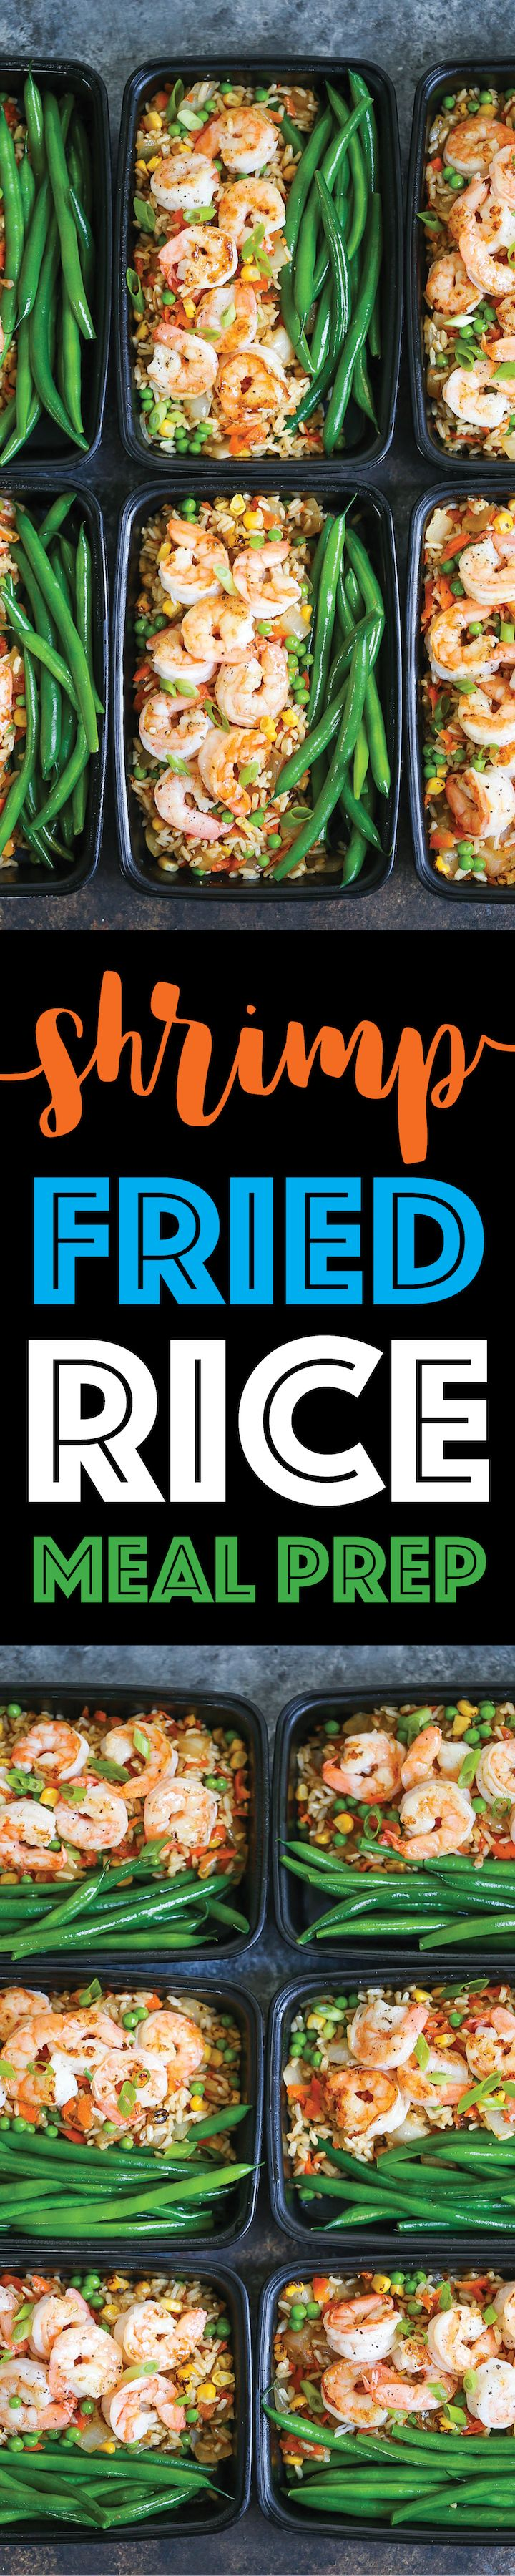 Shrimp Fried Rice Meal Prep - No need to order takeout anymore! Your favorite fried rice dish is packed right into meal prep boxes for the entire week!